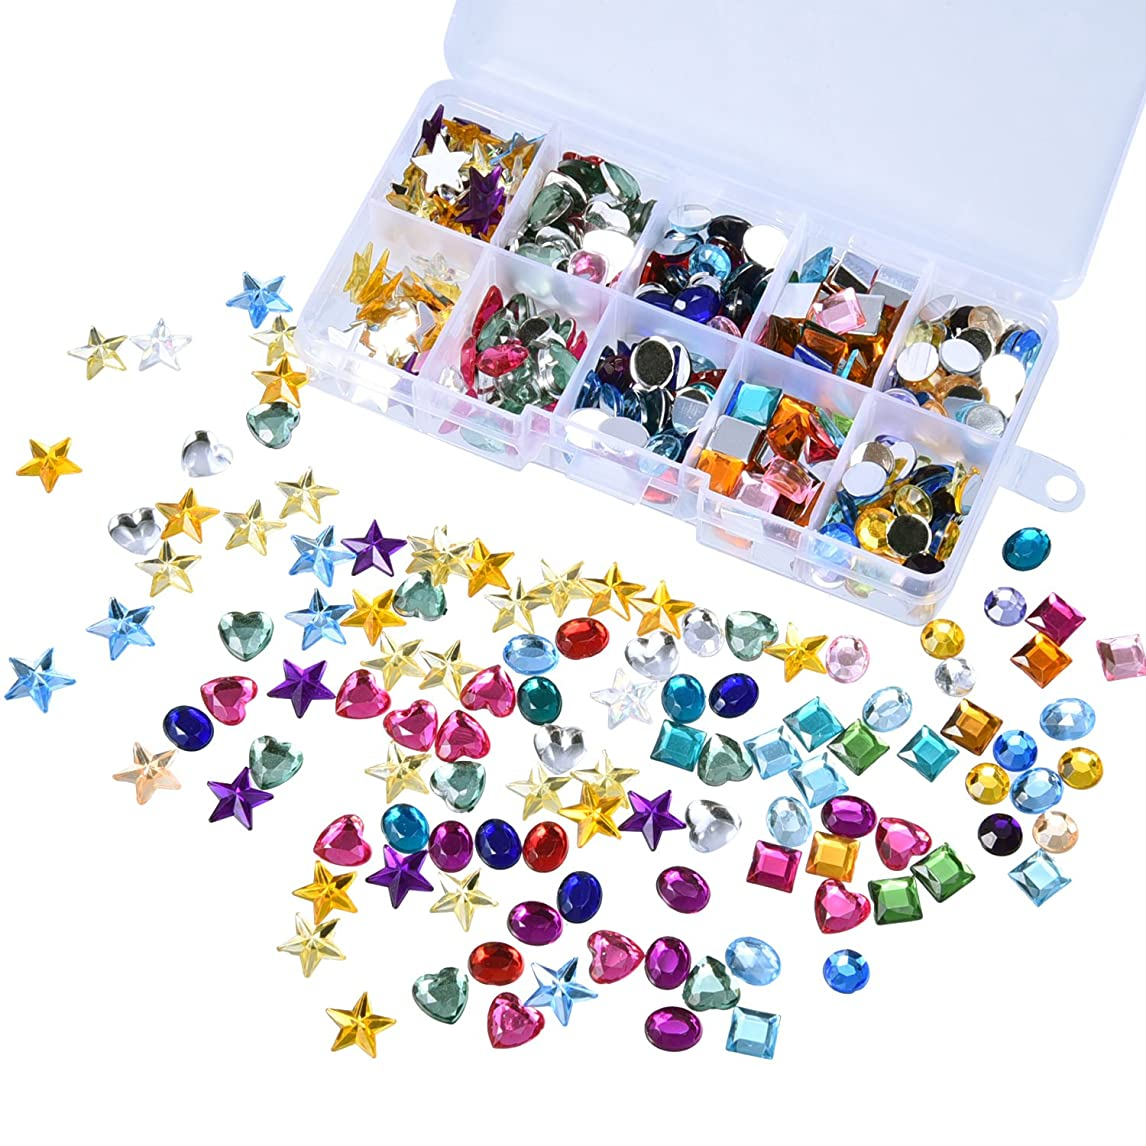 Outus 500 Pieces Gems Flatback Rhinestones Acrylic Craft Jewels Gemstone Embellishments, Heart Star Square Oval, Round, with Plastic Storage Box, Assorted Color srxuh52016737847